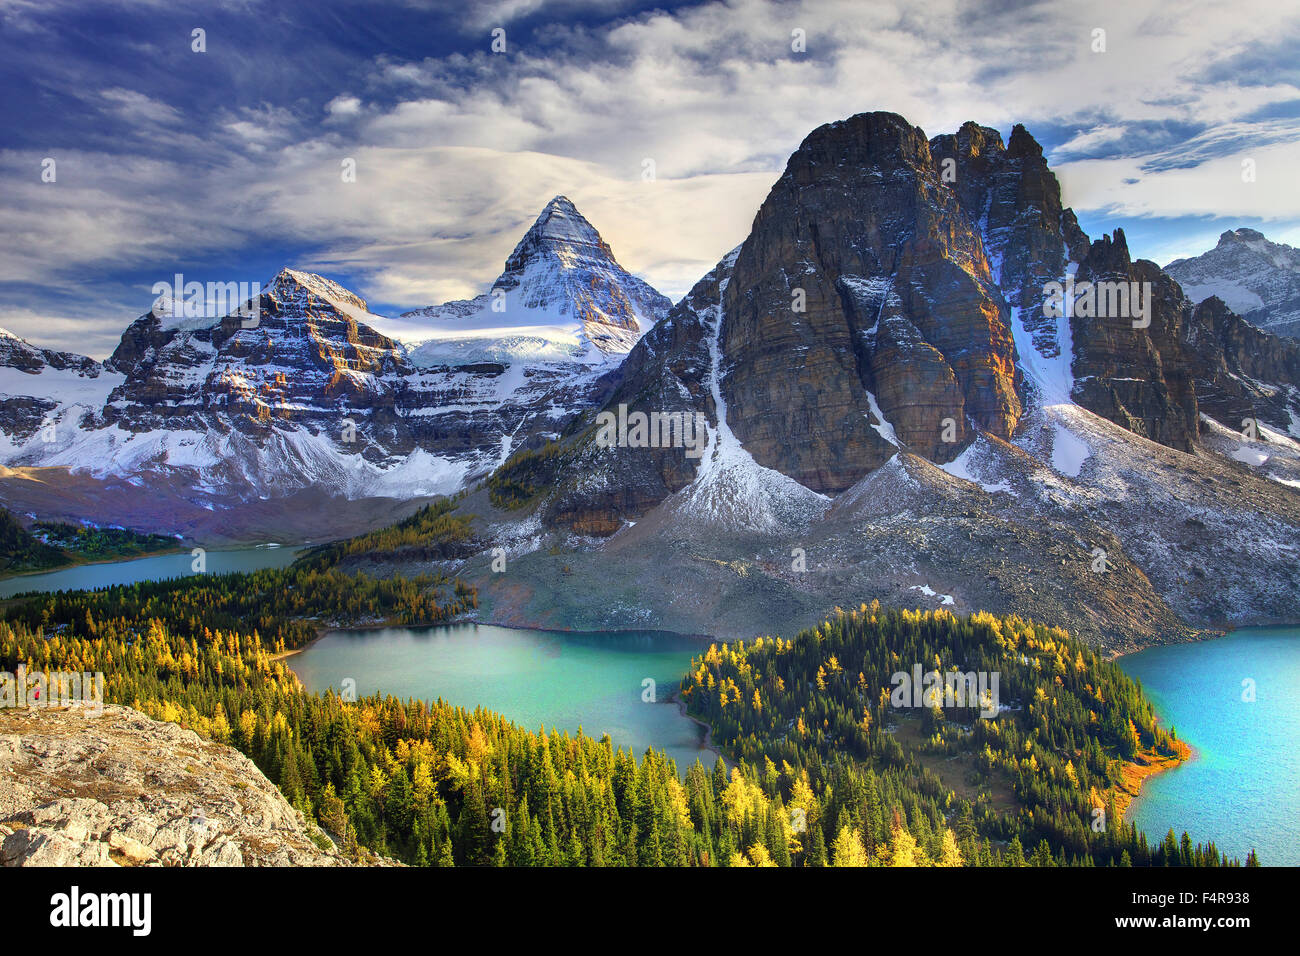 Canada, province, nature, landscape, Rockies, Canadian Rockies, mountains, lake, scenery, British Columbia, Mount - Stock Image